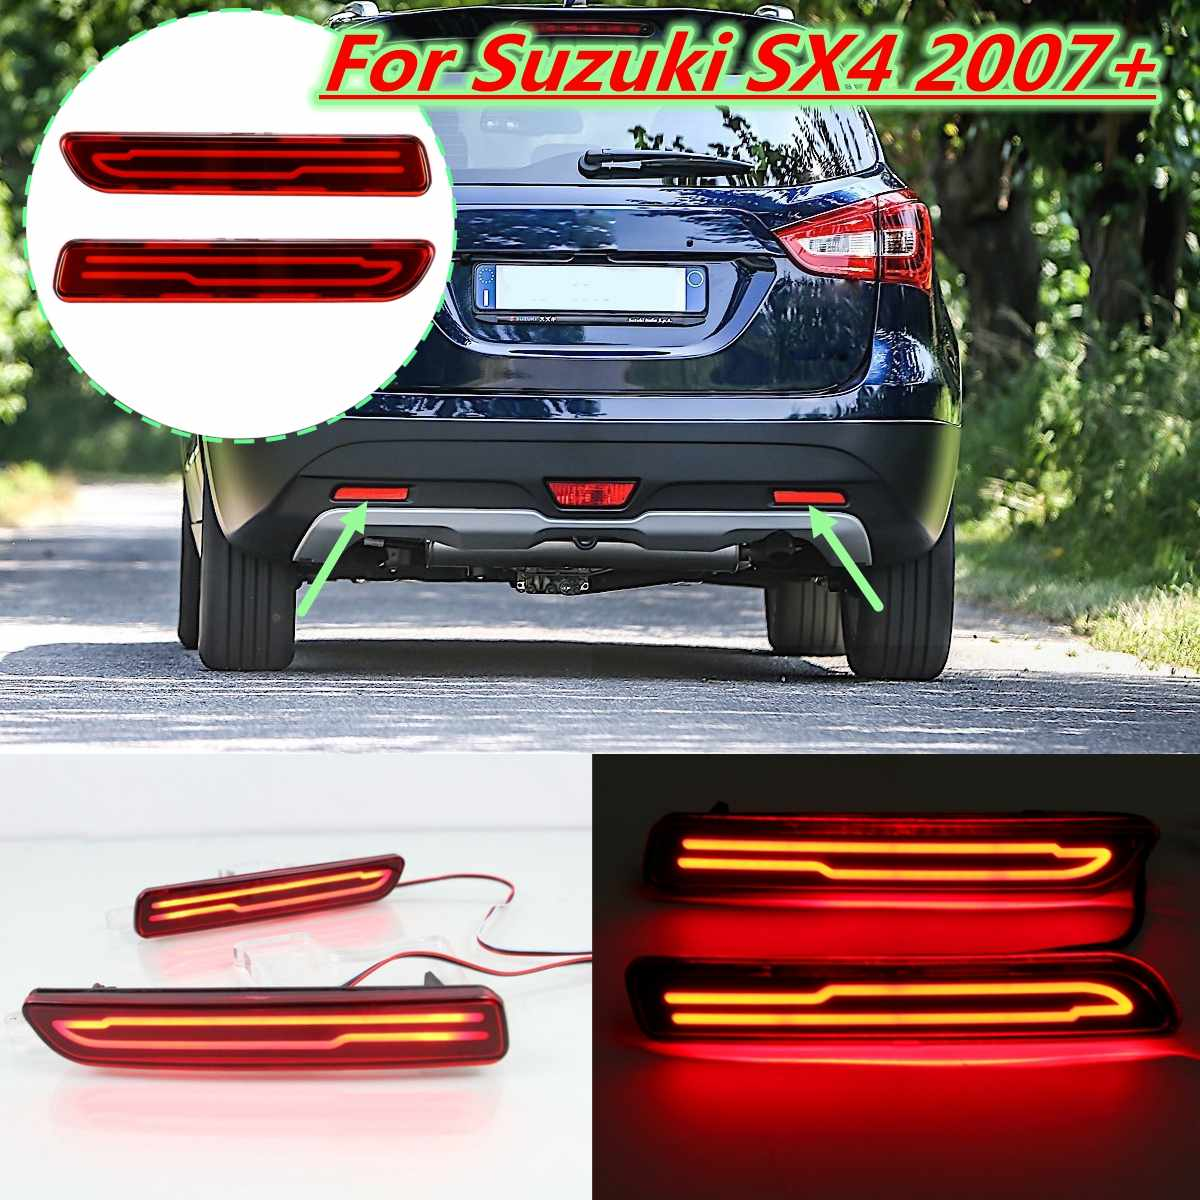 2x LED Rear Bumper Reflector Fog Light for <font><b>Suzuki</b></font> <font><b>SX4</b></font> 2007 2008 2009 2010 2011 - <font><b>2018</b></font> Car Tail Brake Drive Lamp 2 Function image